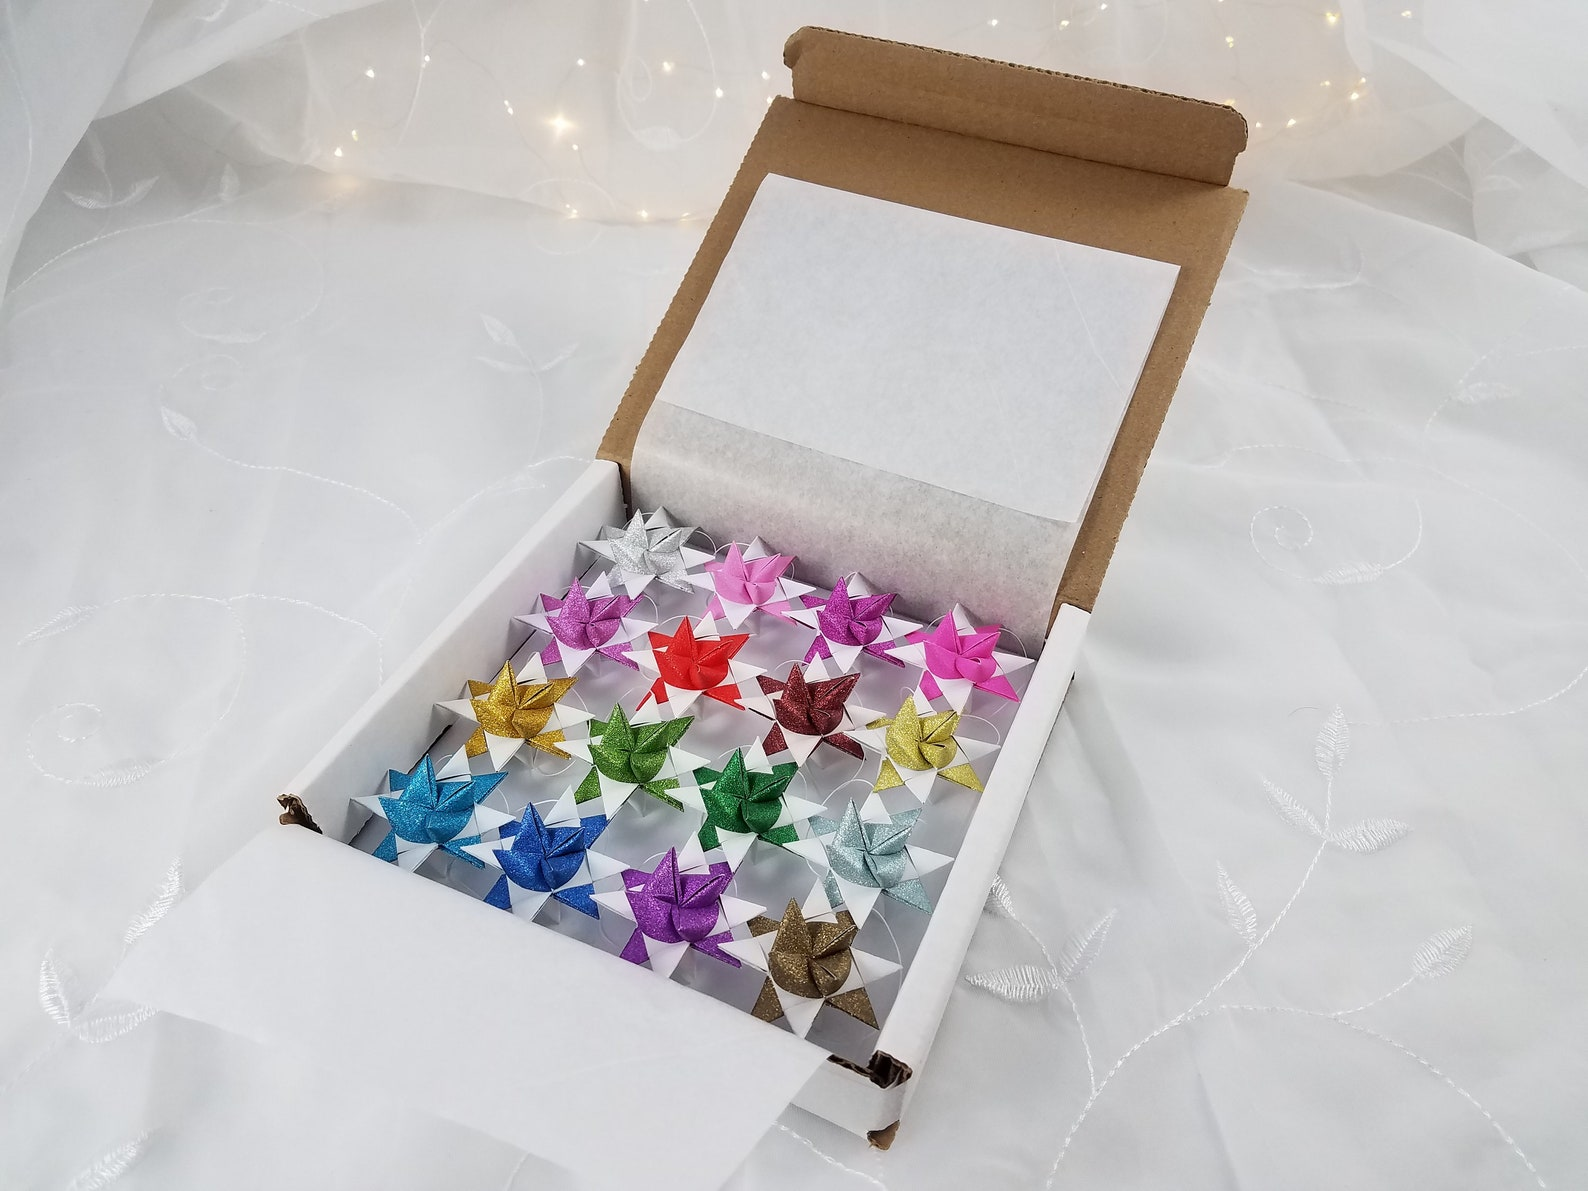 Glittery Moravian Stars - Set of 16 - Traditional Christmas Ornaments - aka Froebel Stars - Great for New Years too!